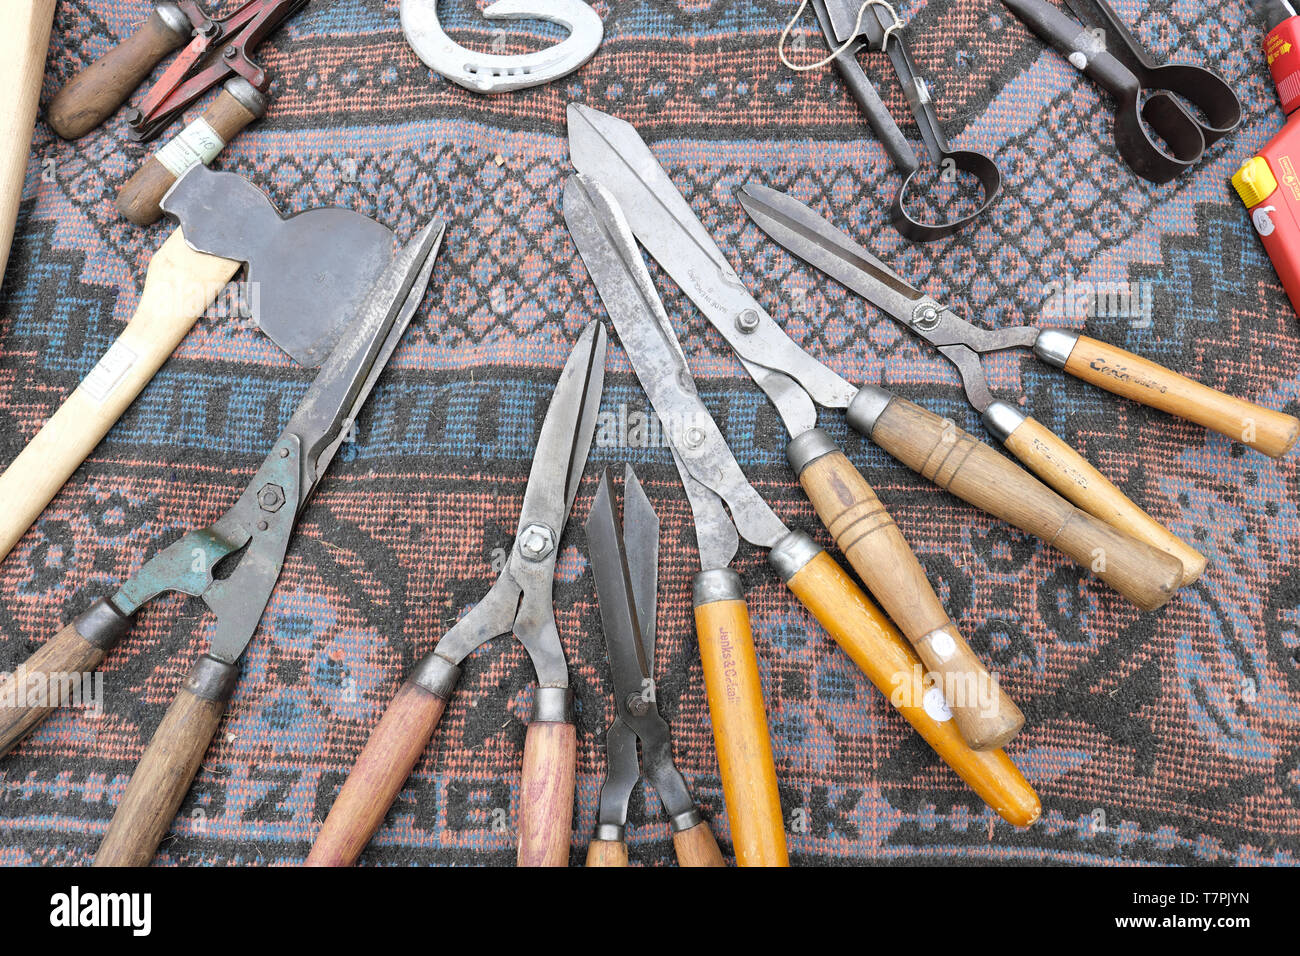 Secondhand used tools for sale at car boot sale UK 2019 - Stock Image